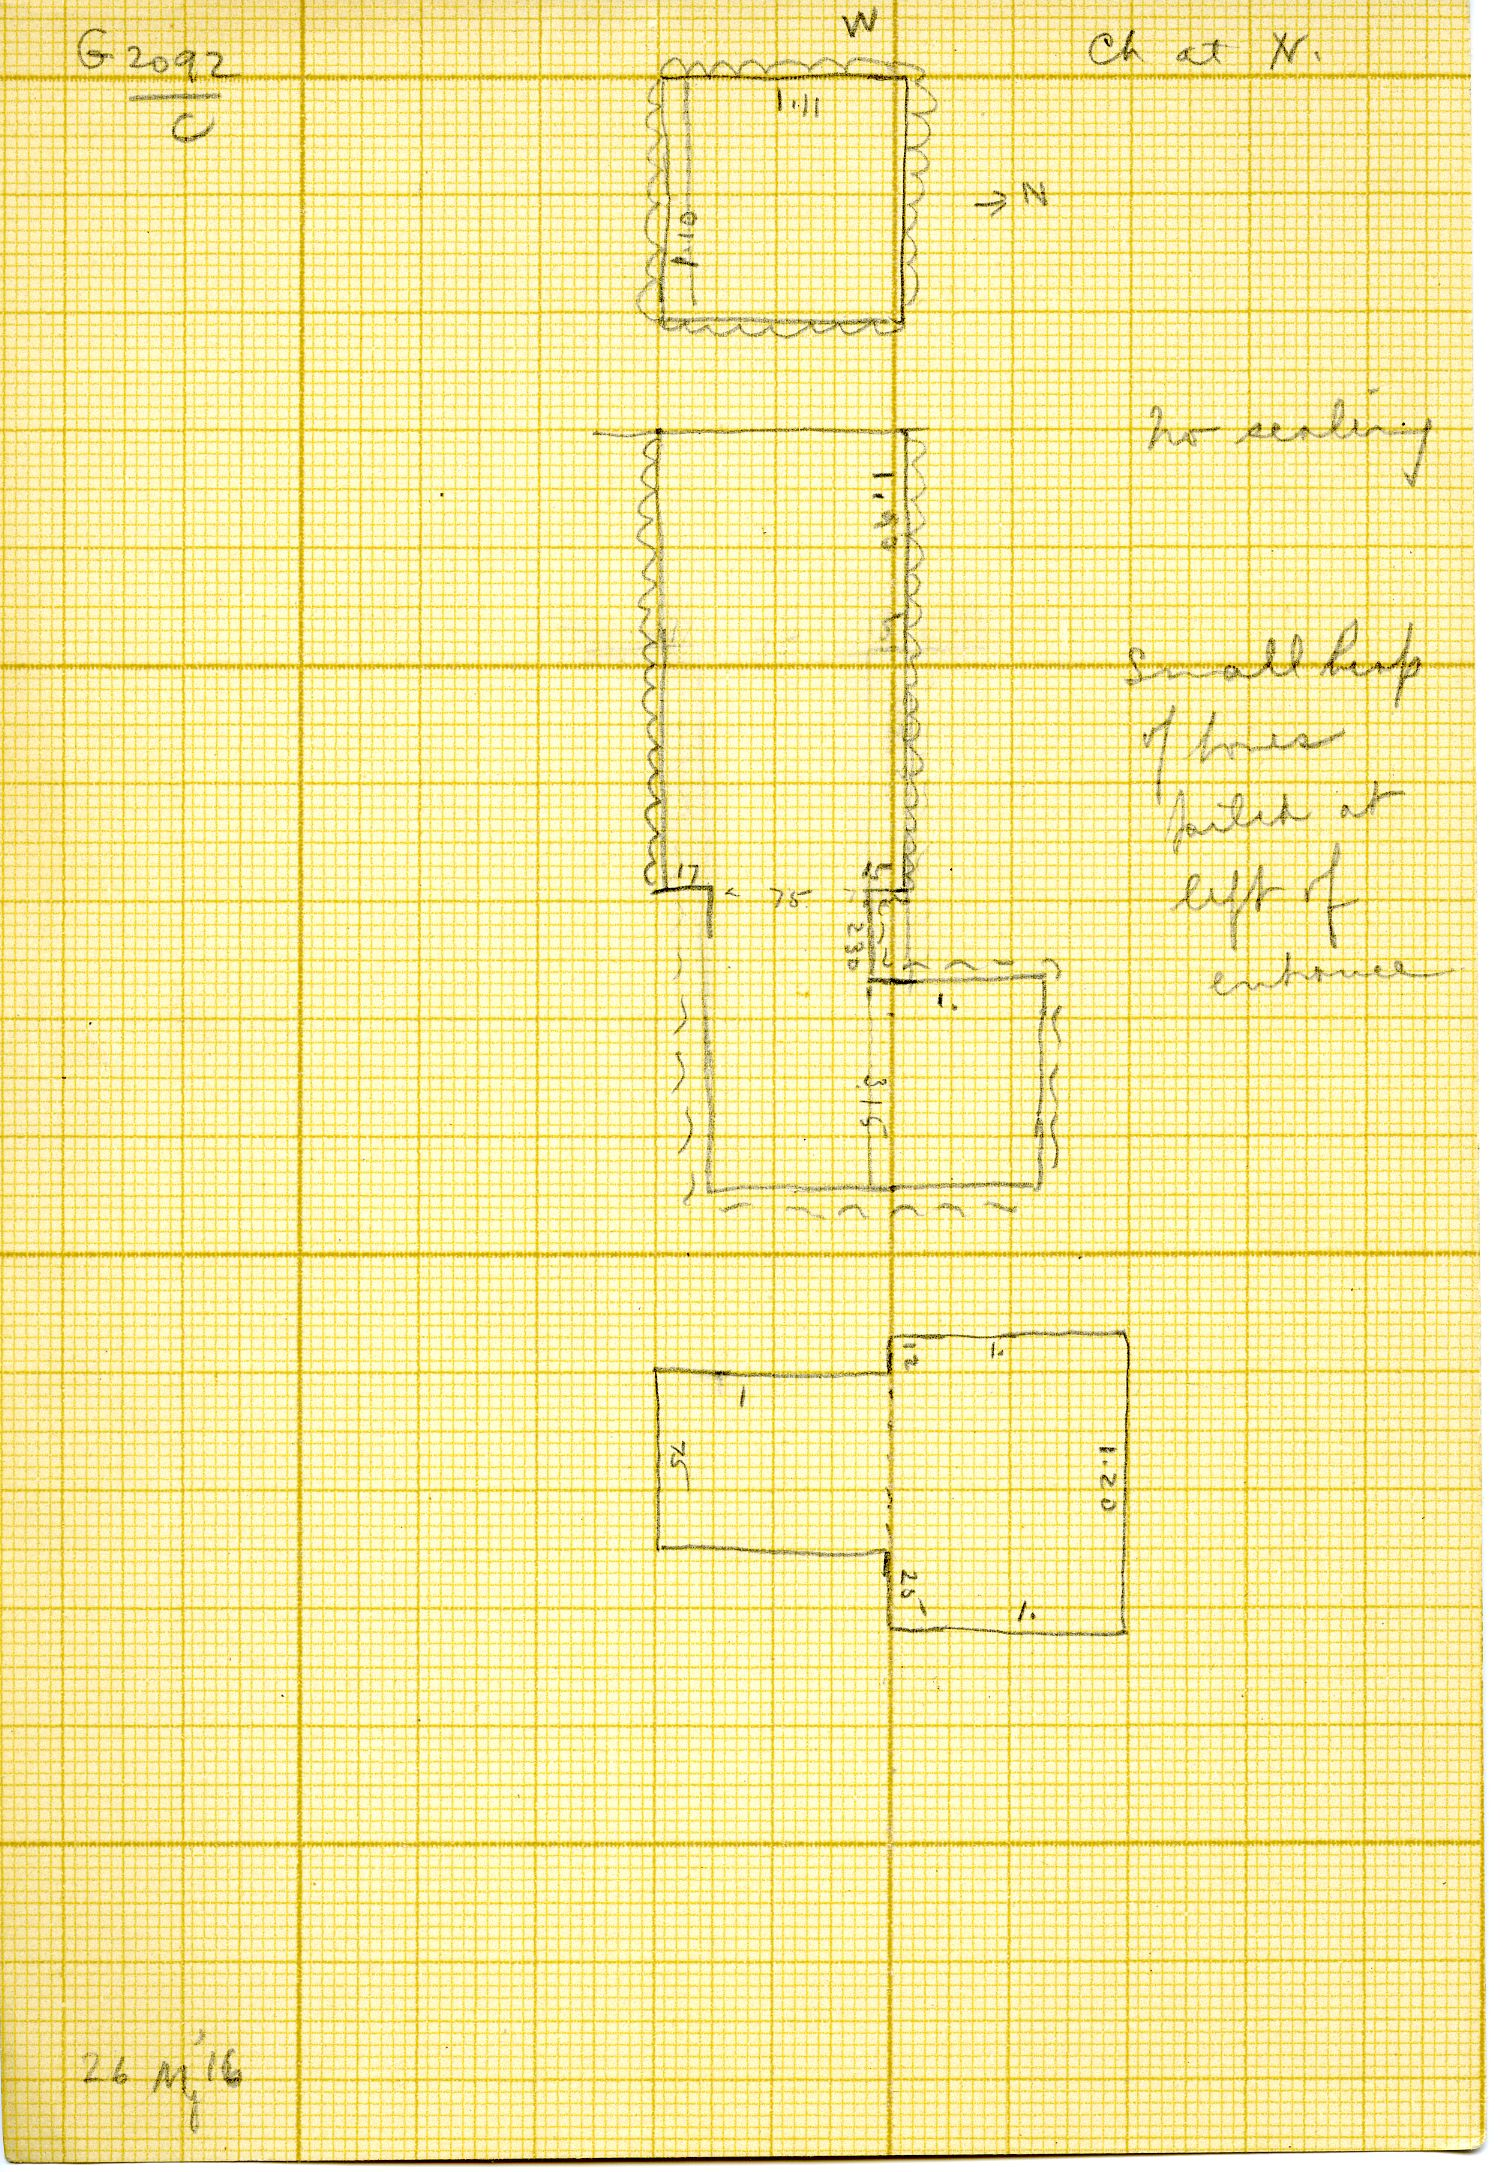 Maps and plans: G 3092, Shaft C